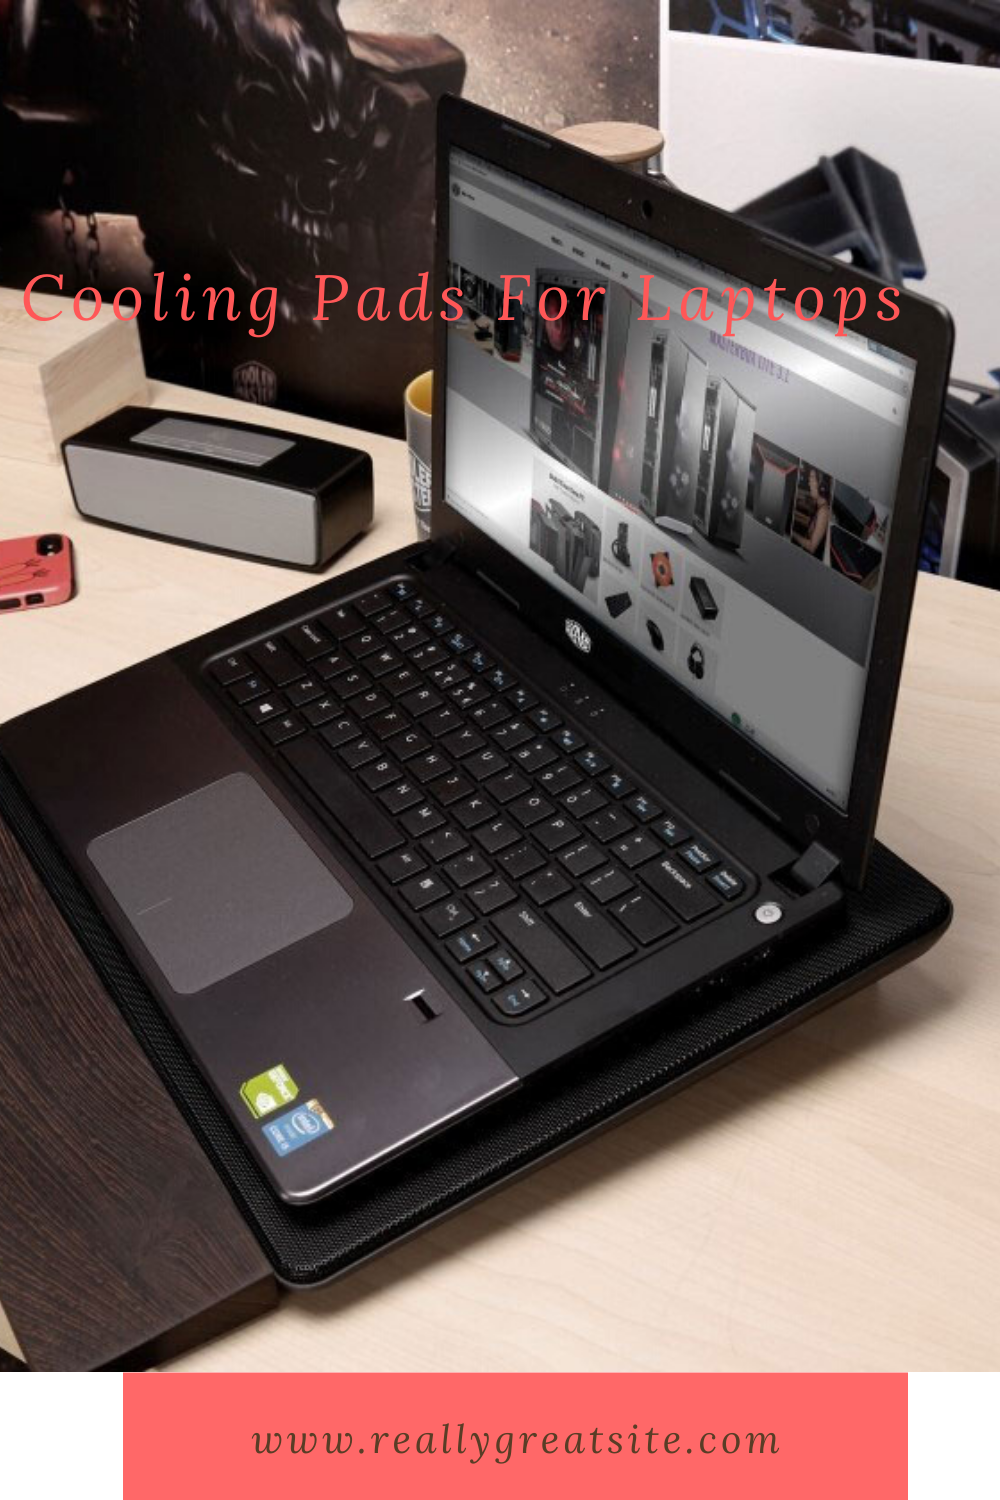 Coolingpadsforlaptops In 2020 Laptop Cooling Pad Laptop Cooler